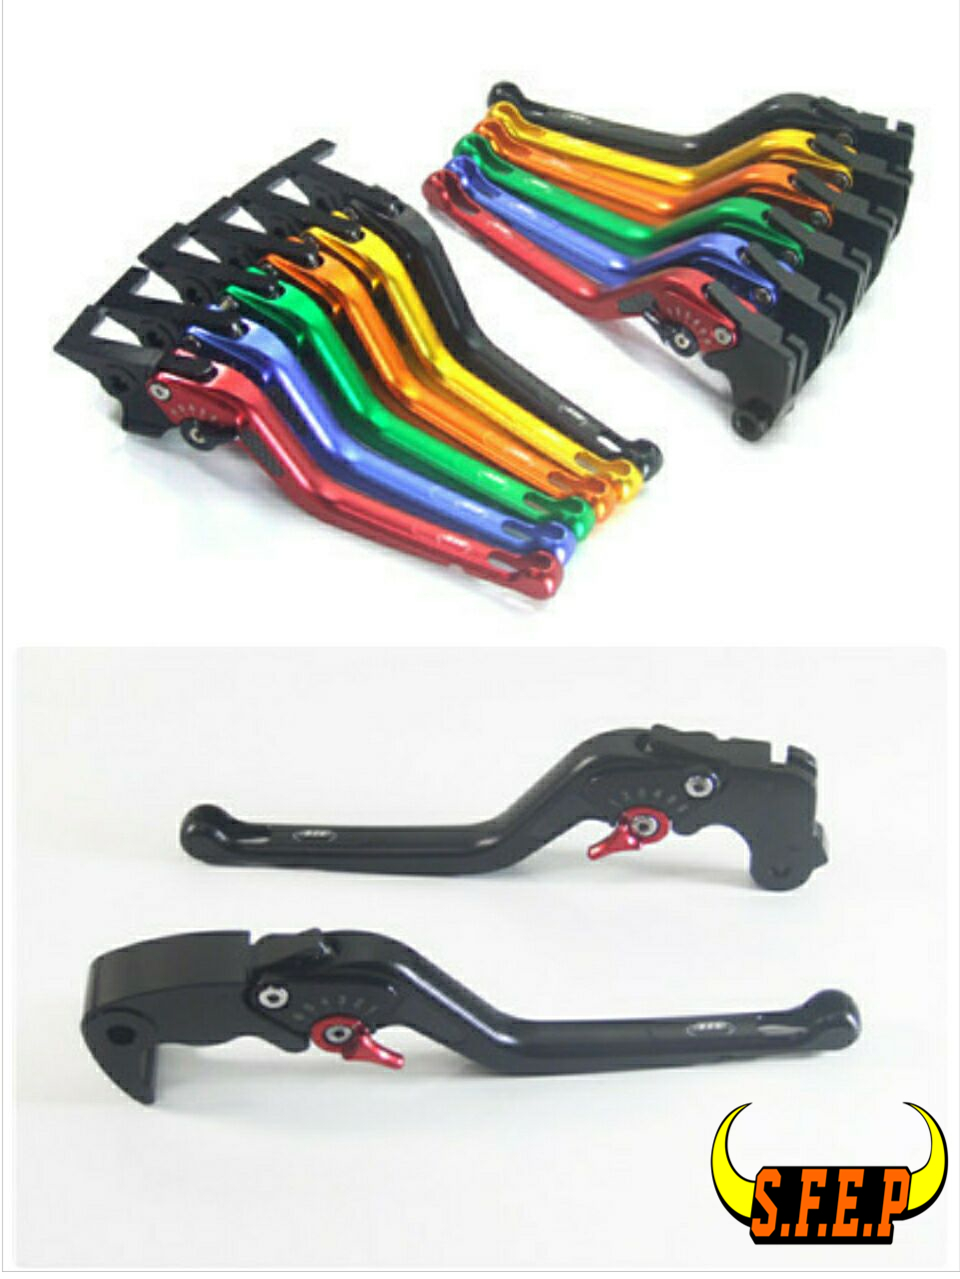 3D Long CNC Adjustable Motorcycle Brake and Clutch Levers with Carbon Fiber Inlay For Honda ST1300/ST1300A 2003-2007 for honda cbr1100xx st1300 vfr800 motorcycle cnc billet aluminum long brake clutch levers 8 colors